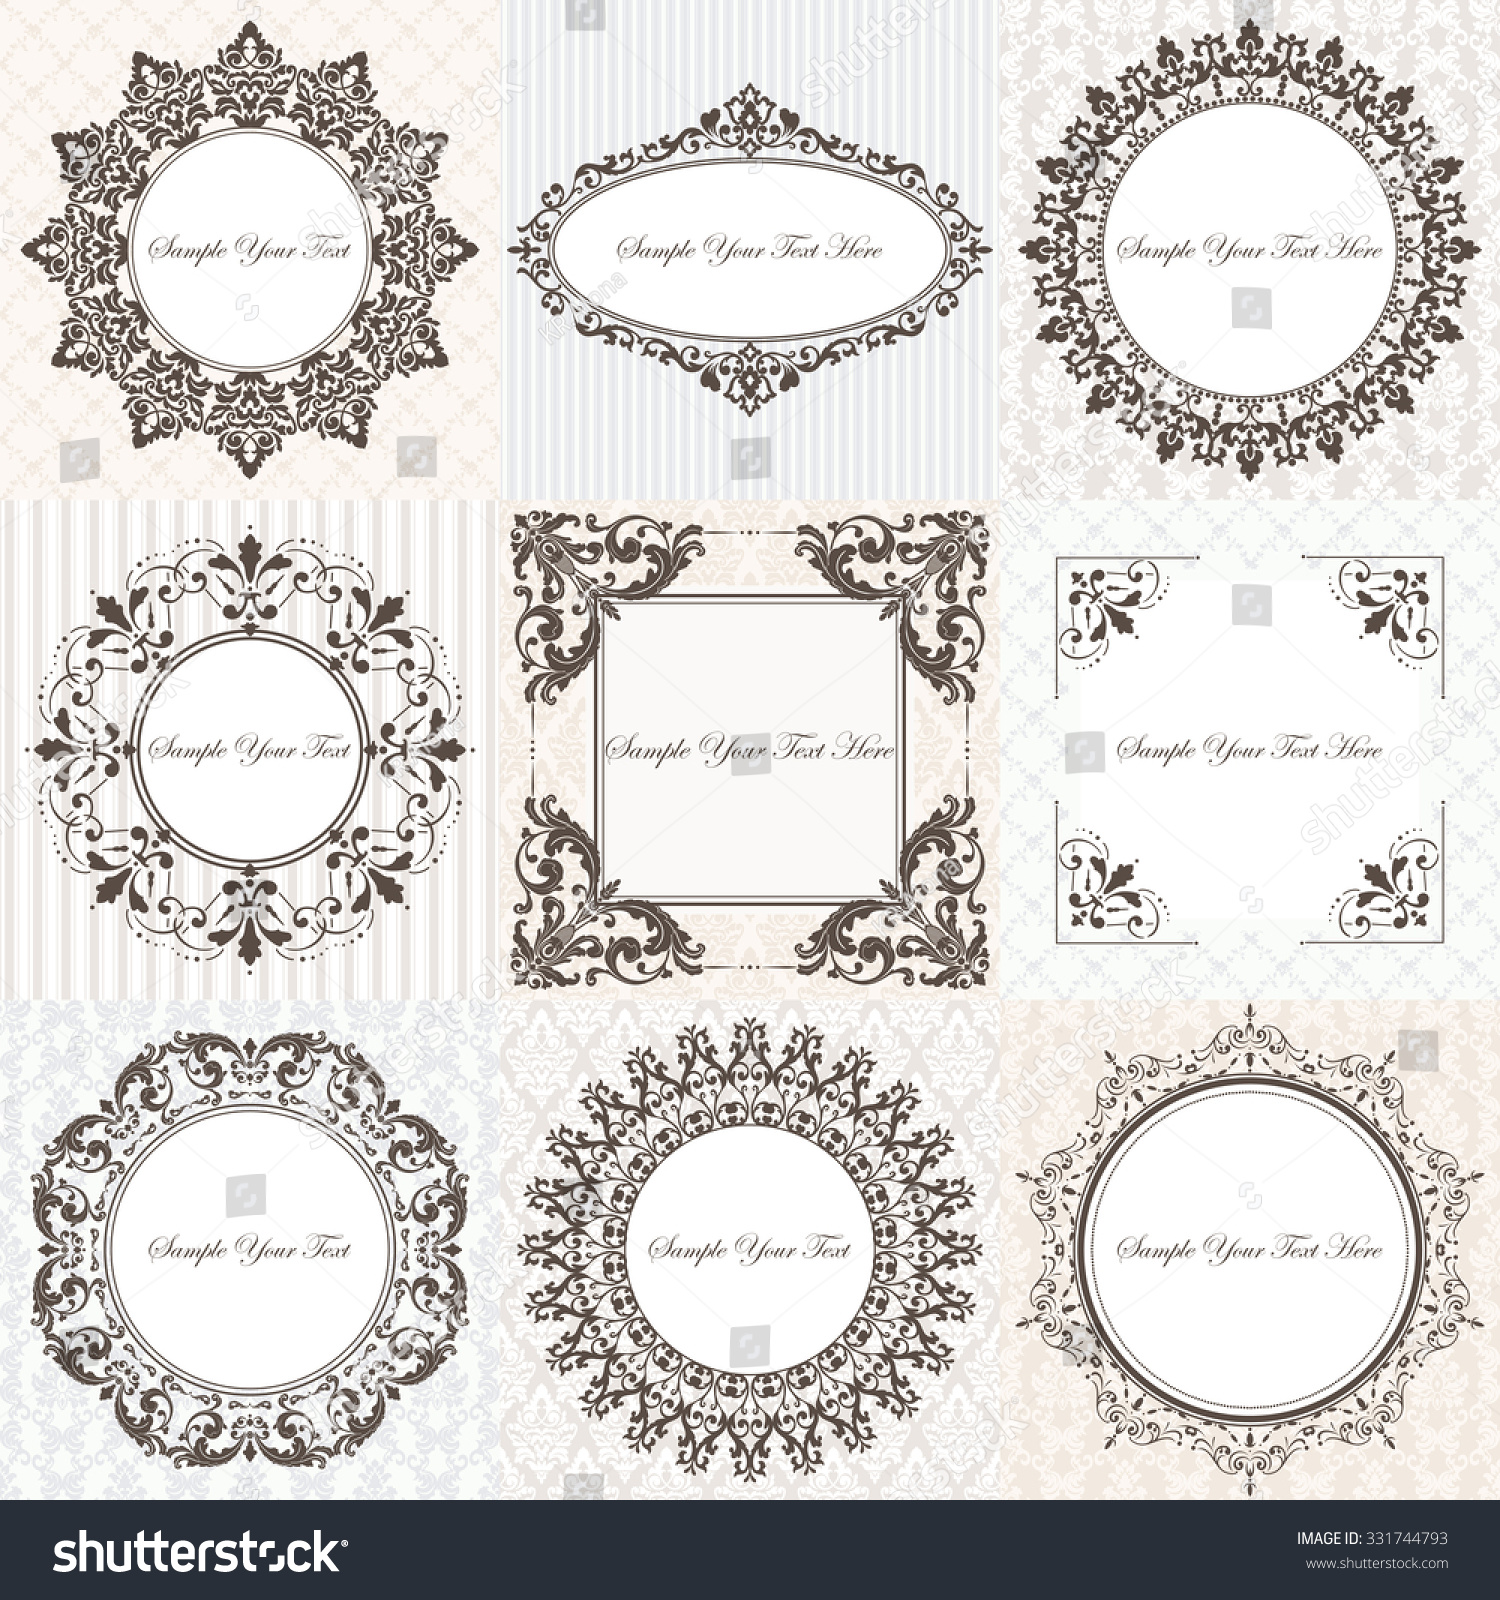 Collection Vintage Classic Frames Damask Patterns Stock Vector (2018 ...